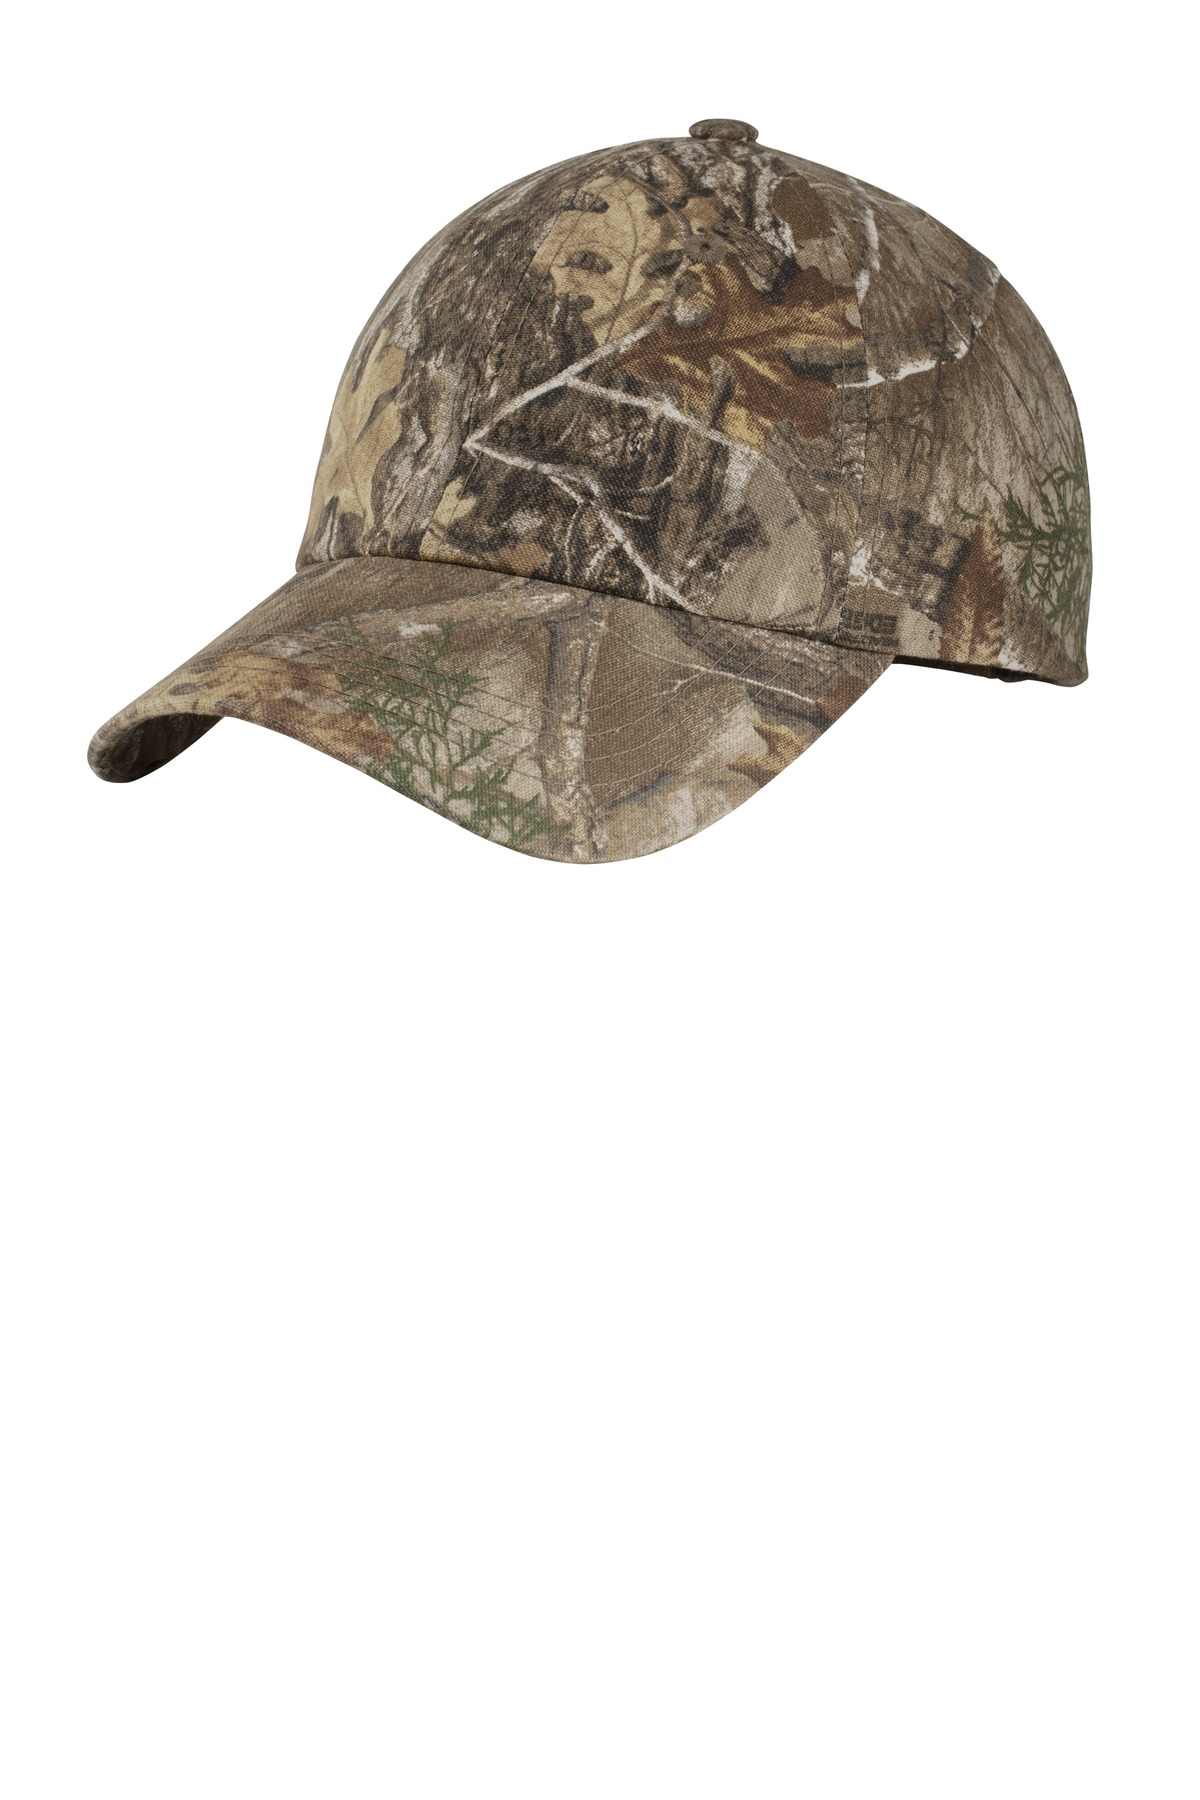 Port Authority ®  Pro Camouflage Series Garment-Washed Cap.  C871 - Realtree Edge